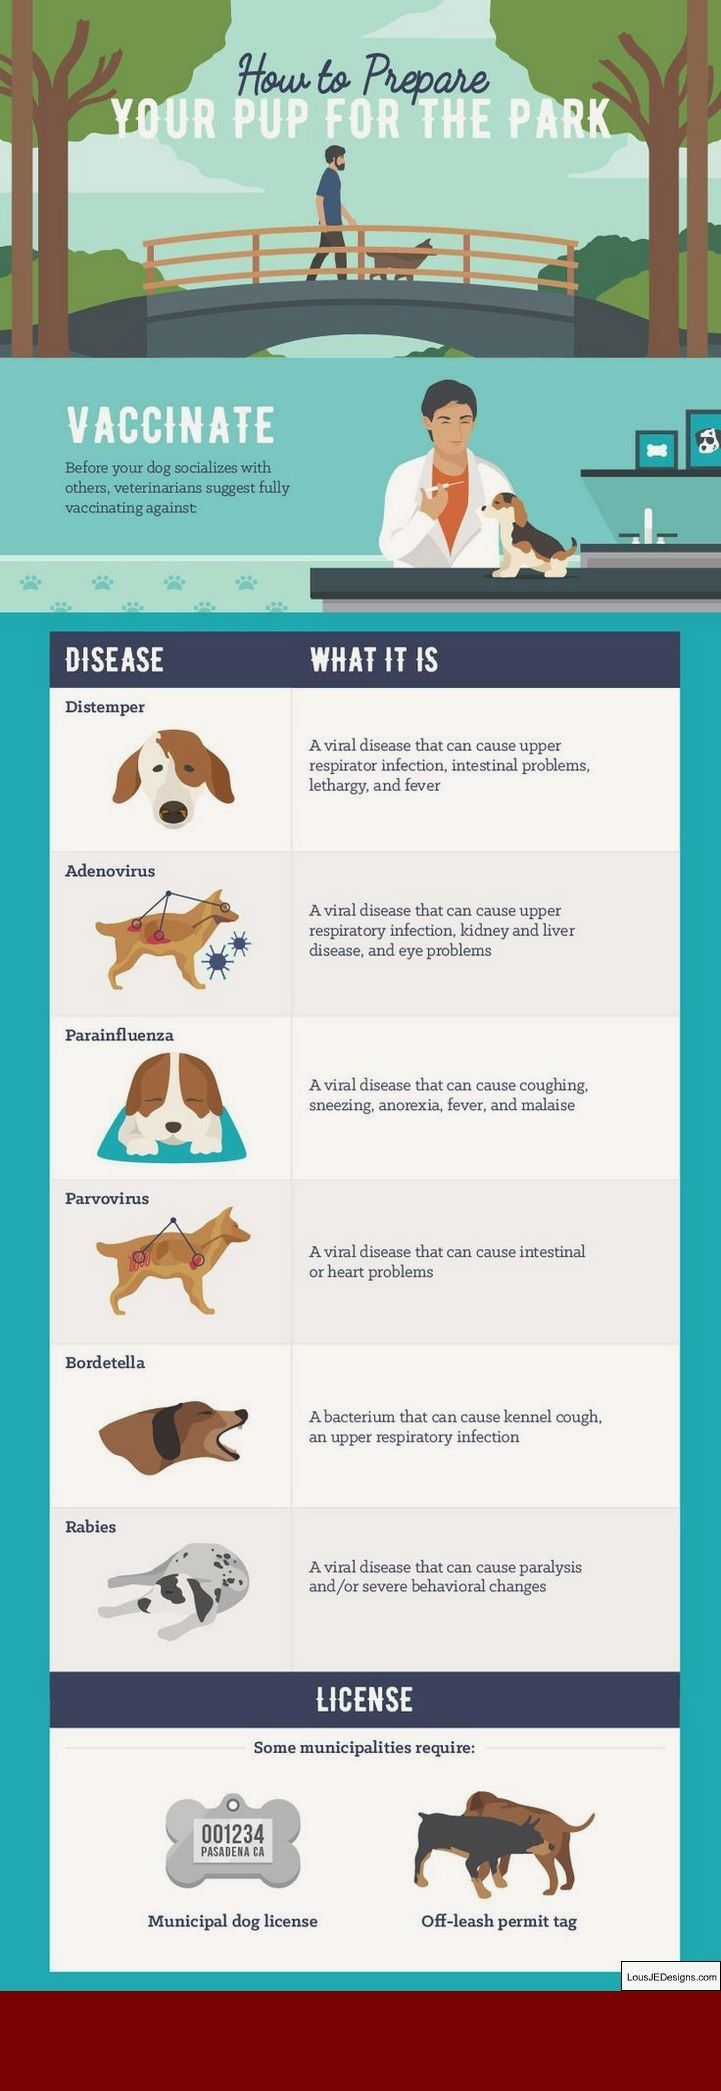 Dog Training Tips Submissive Urination And Pics Of Tips For Leash Training Your Dog Tip 5789624 Dog Park Dog Training Dog Training Obedience